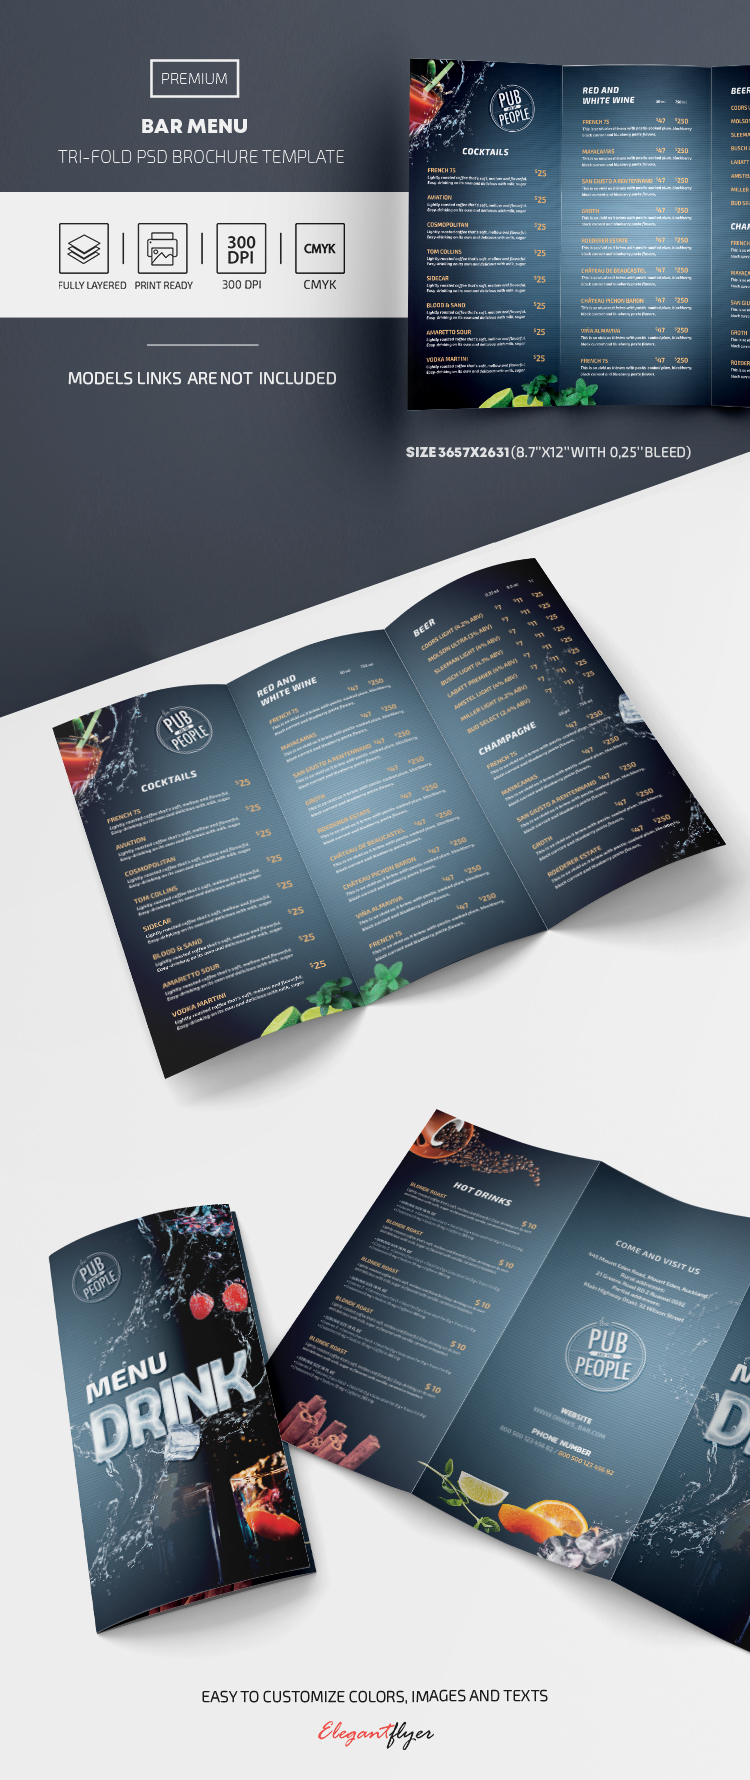 Bar Menu – Premium Tri-Fold PSD Template